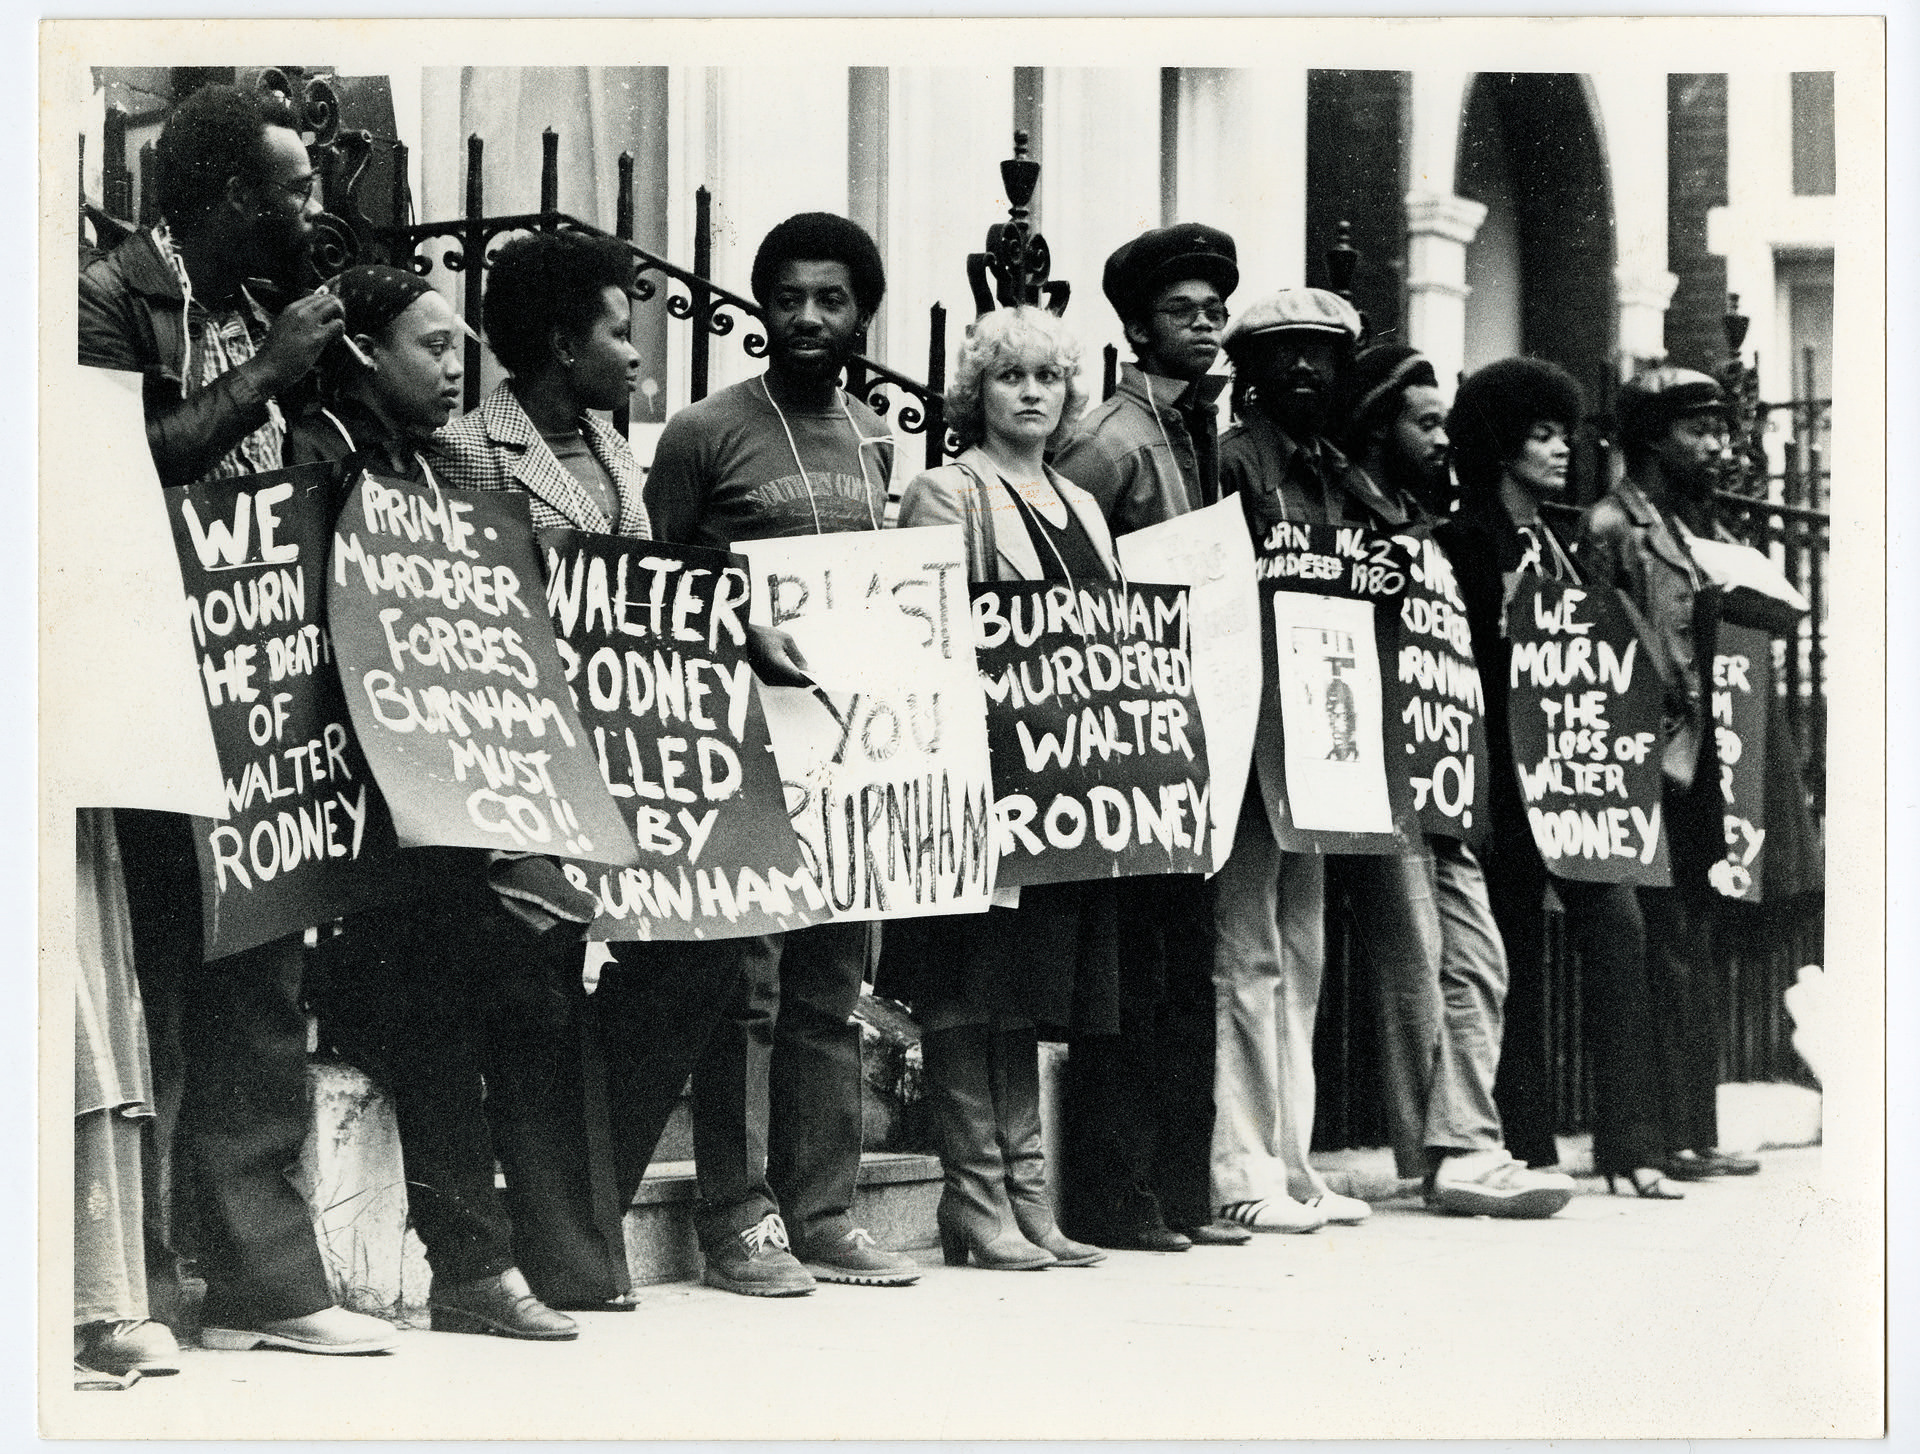 _15 Demonstration for Walter Rodney's murder, London c1980s. Huntley Archives at London Metropolitan